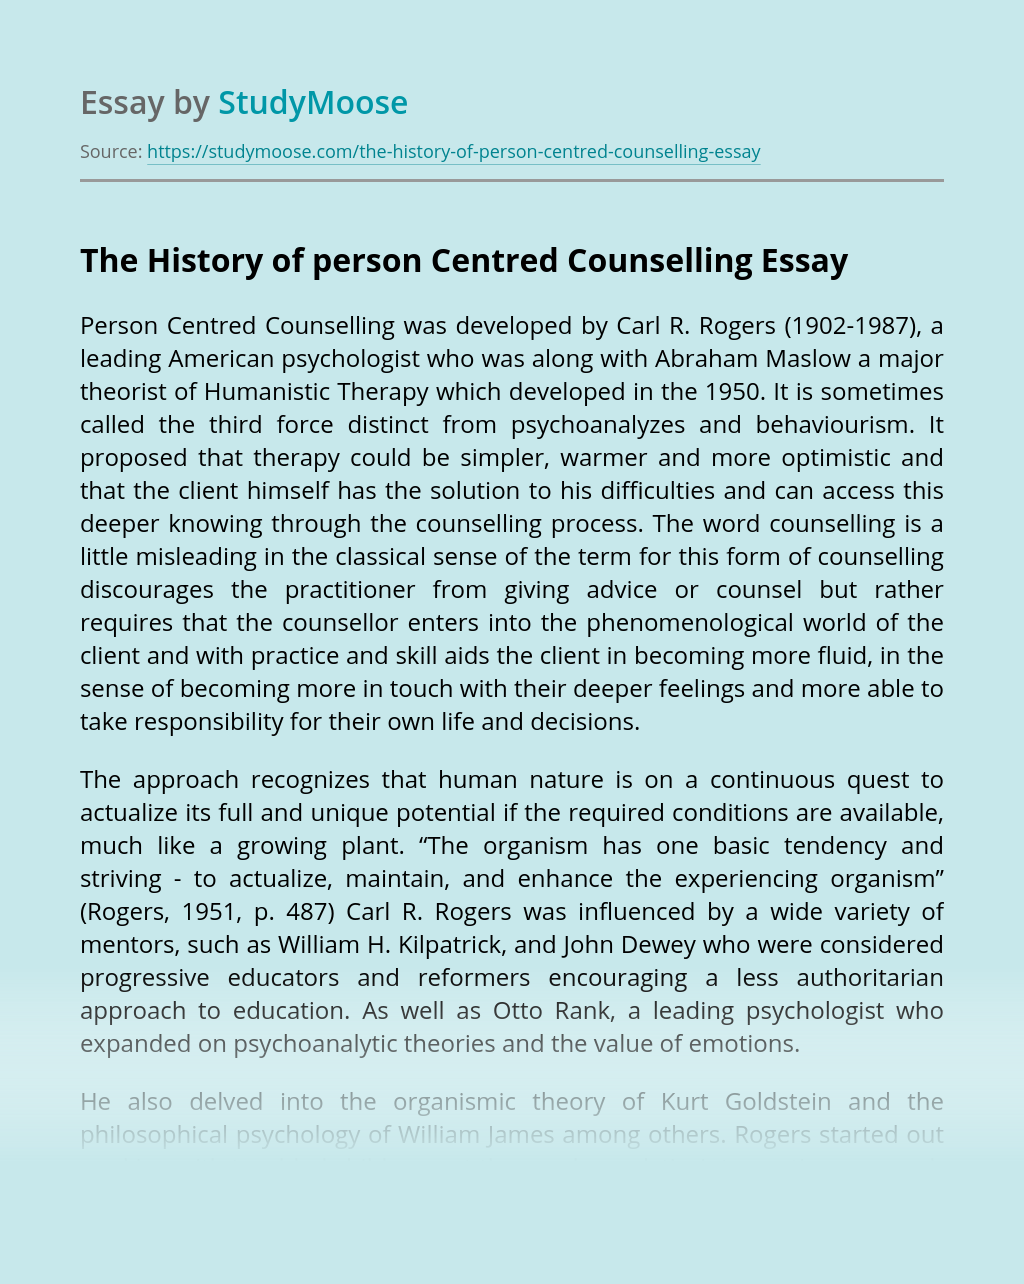 The History of person Centred Counselling